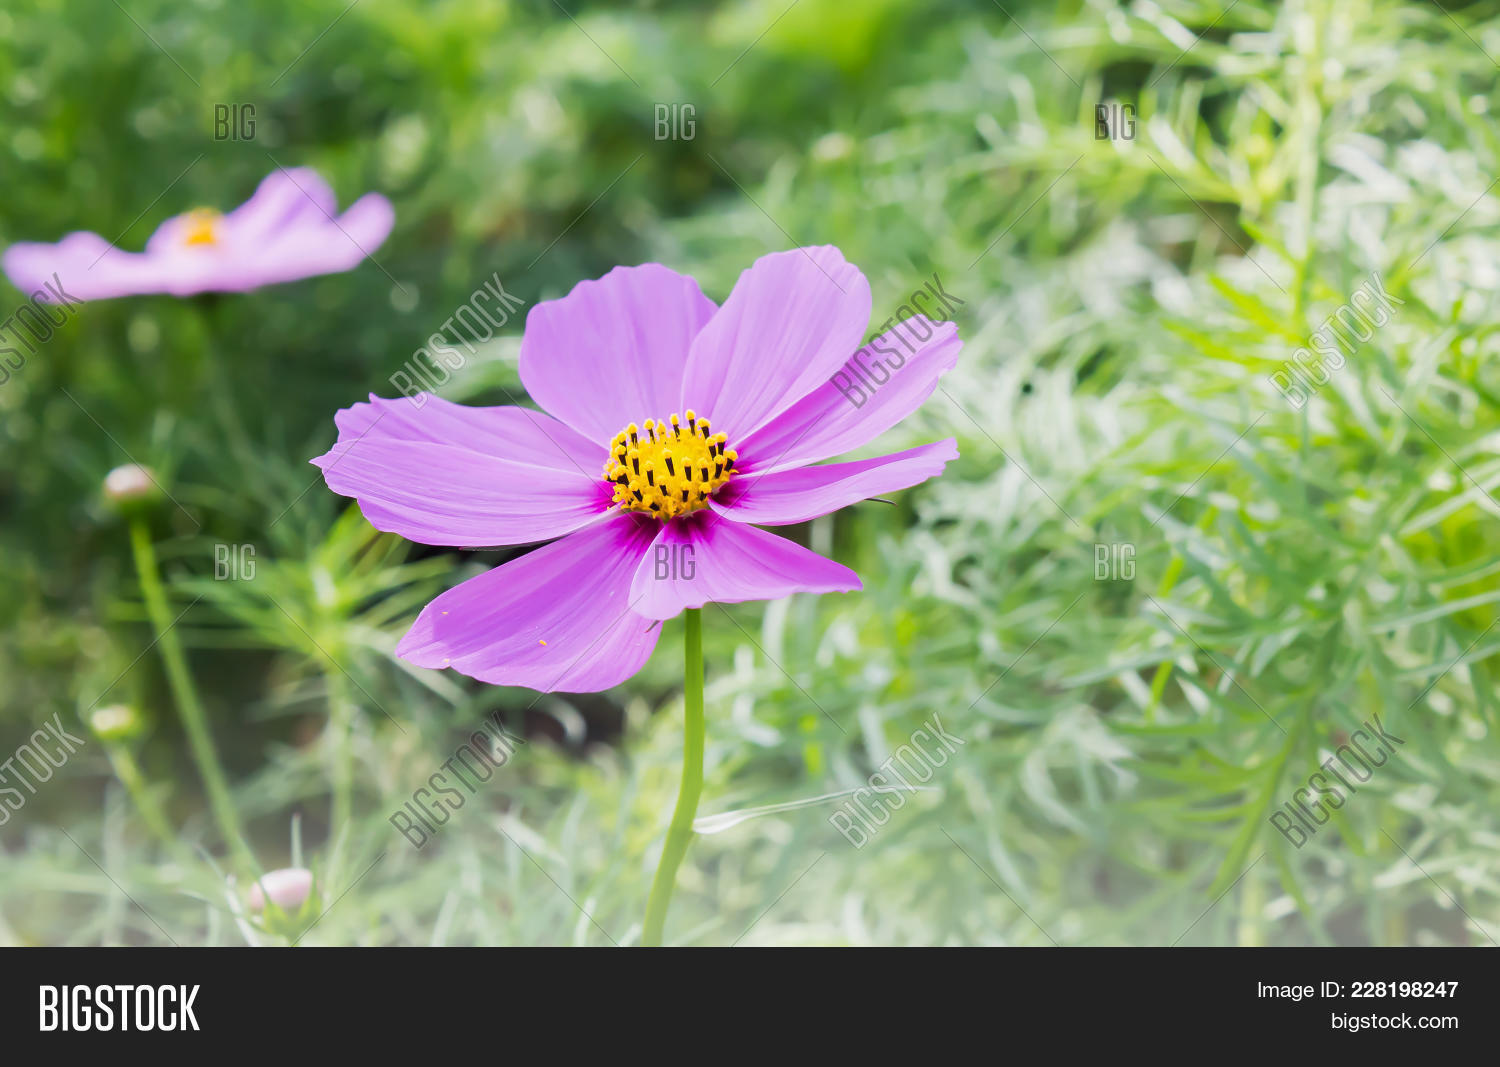 Lovely Single Pink Image Photo Free Trial Bigstock